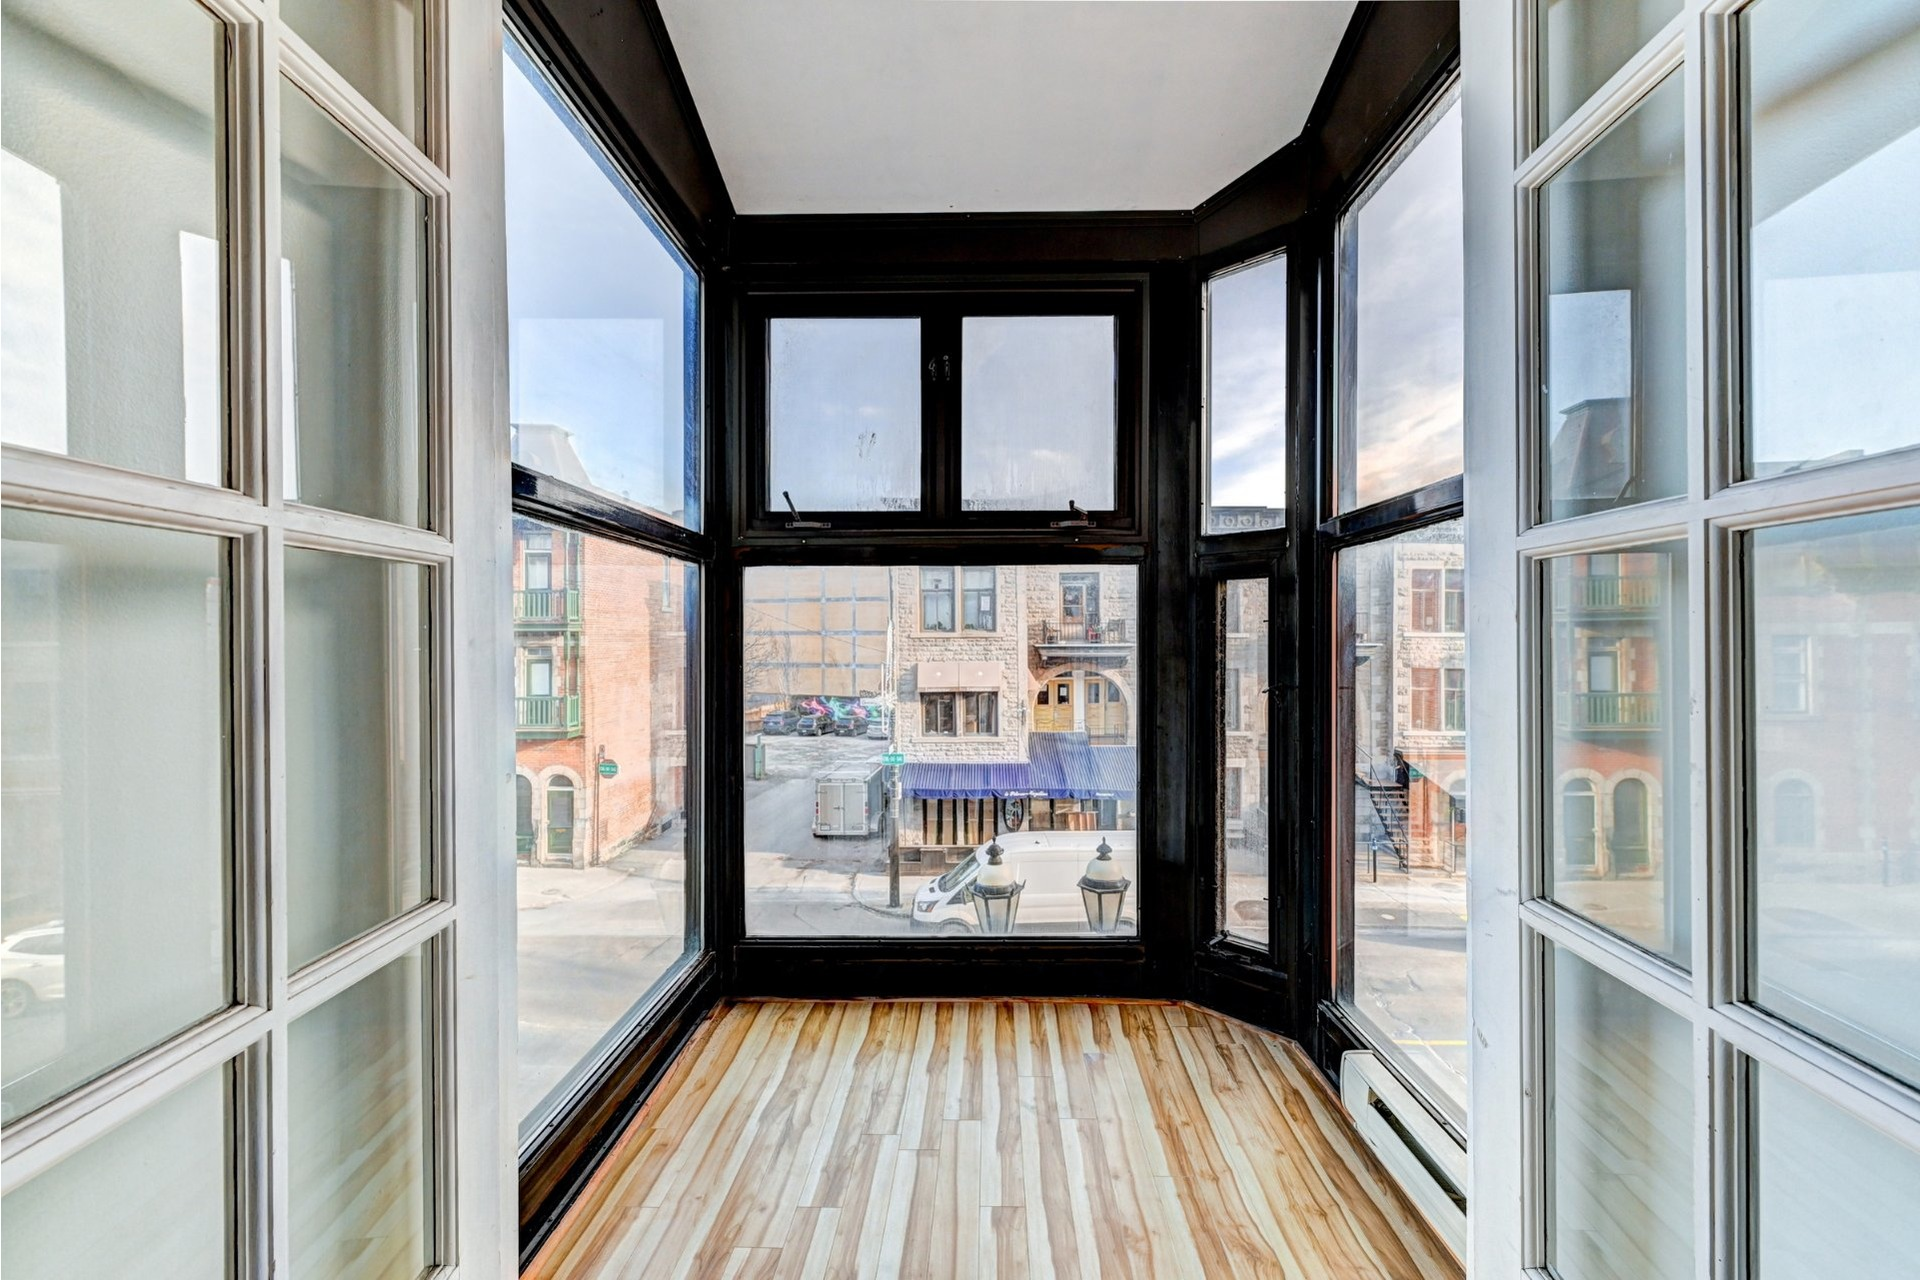 image 19 - Quadruplex For sale Ville-Marie Montréal  - 4 rooms